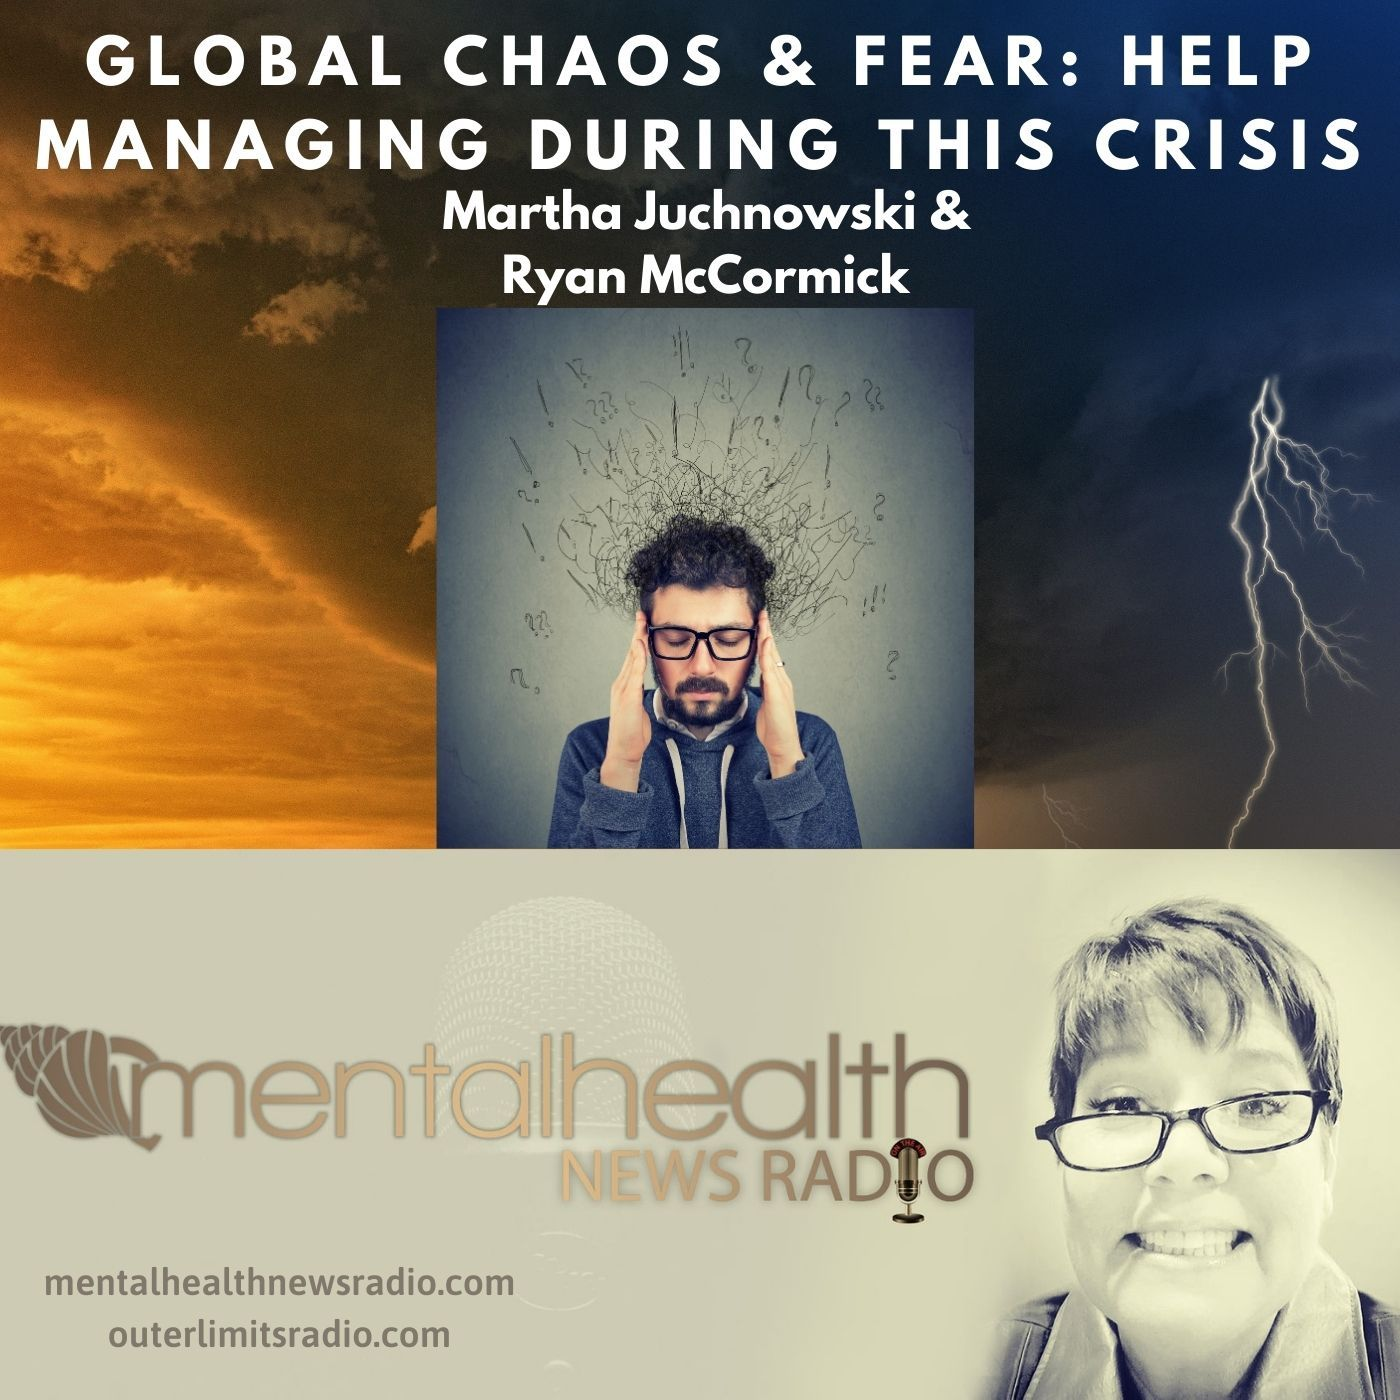 Mental Health News Radio - Global Chaos and Fear: Help Managing During this Crisis